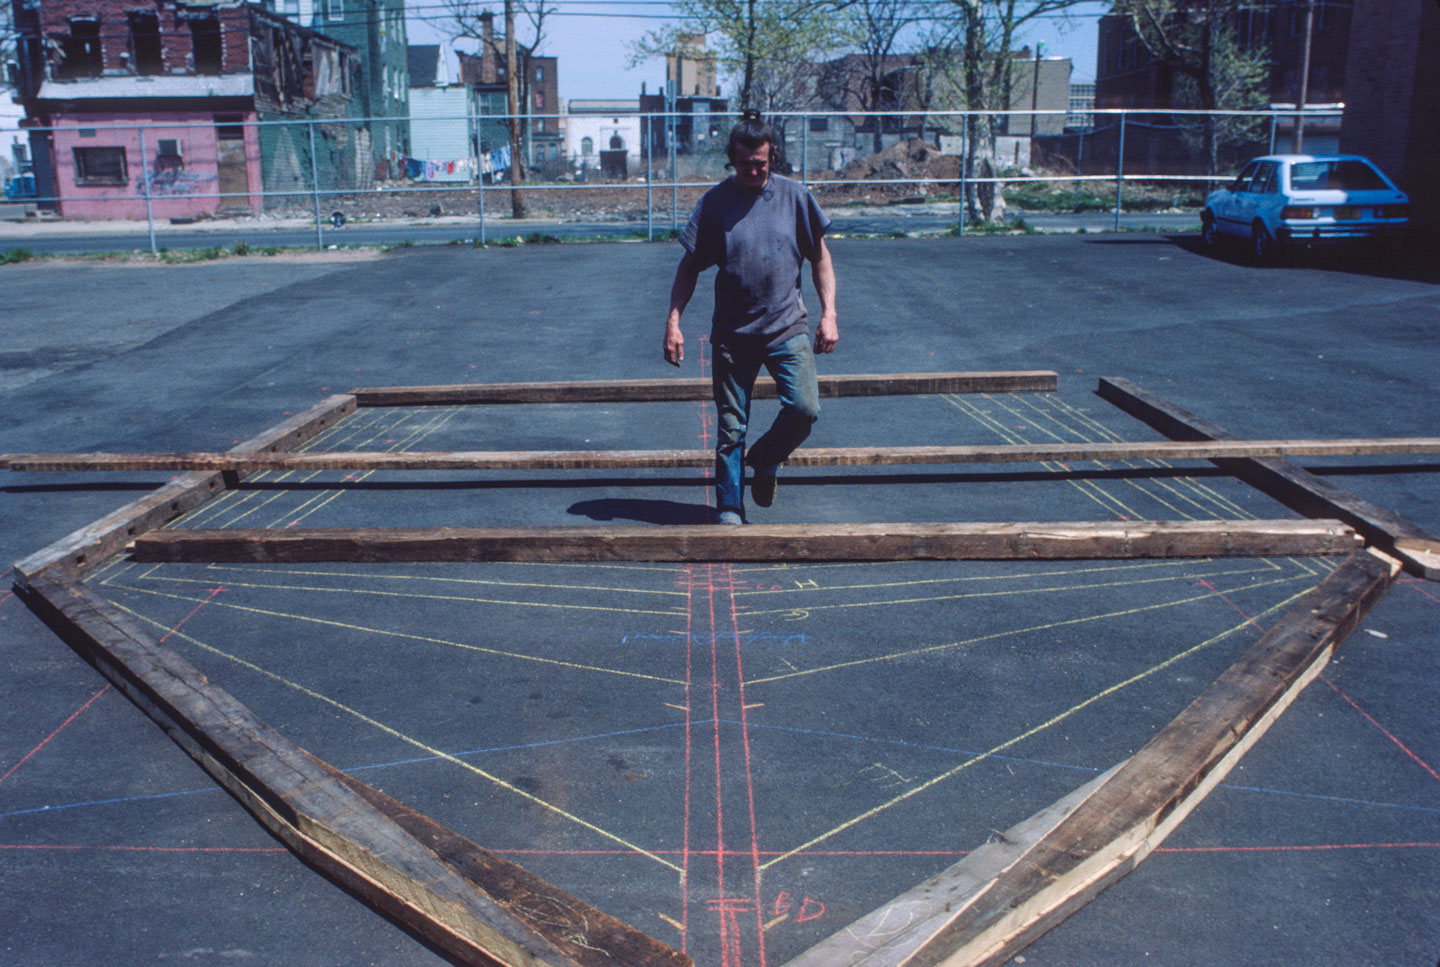 4-Kea designing the ark, Bergen Street at 14th Ave., Newark, 1985_